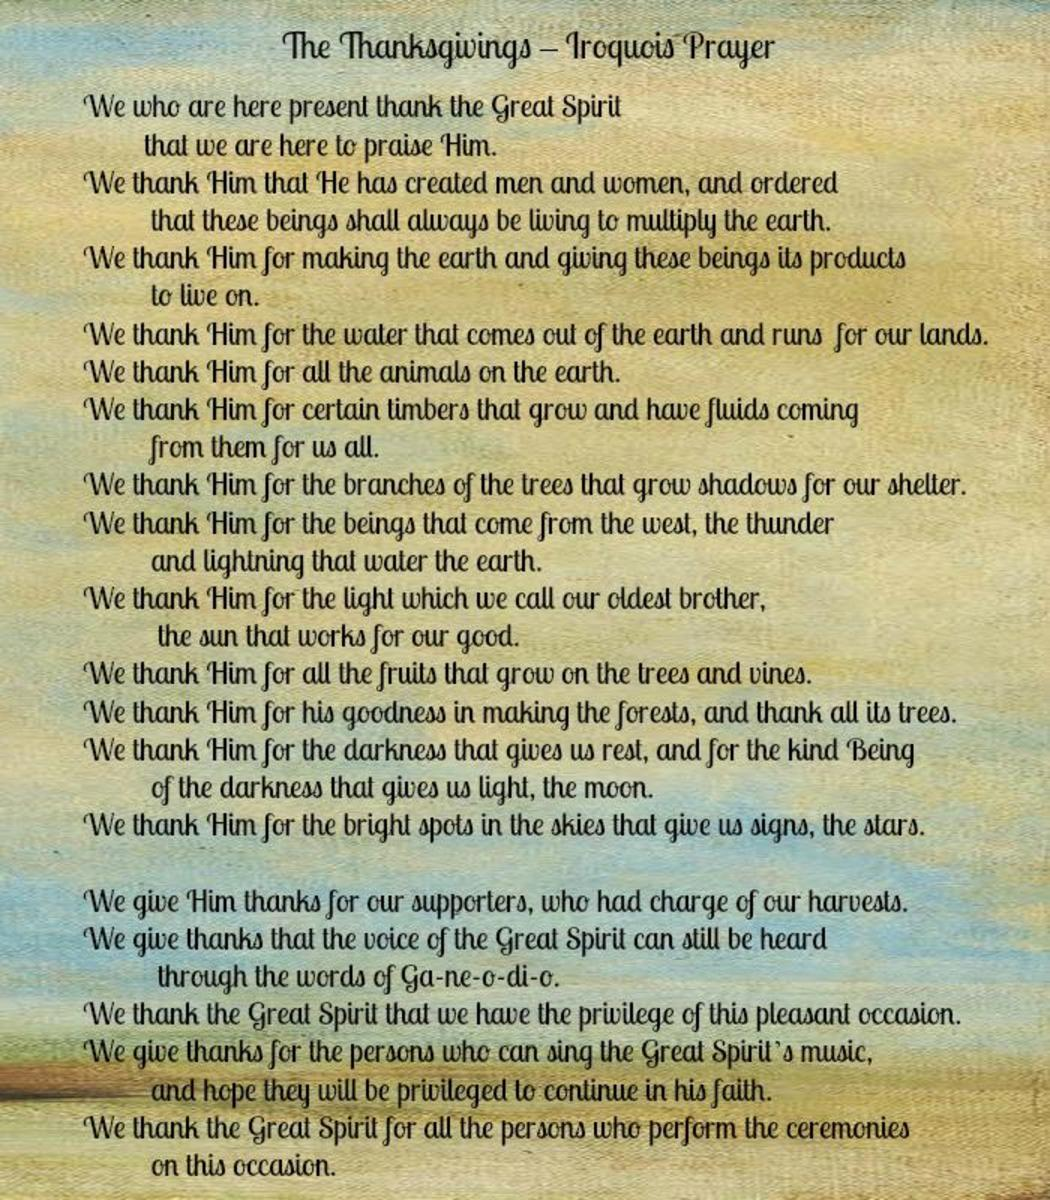 The Thanksgivings Iroquois Prayer